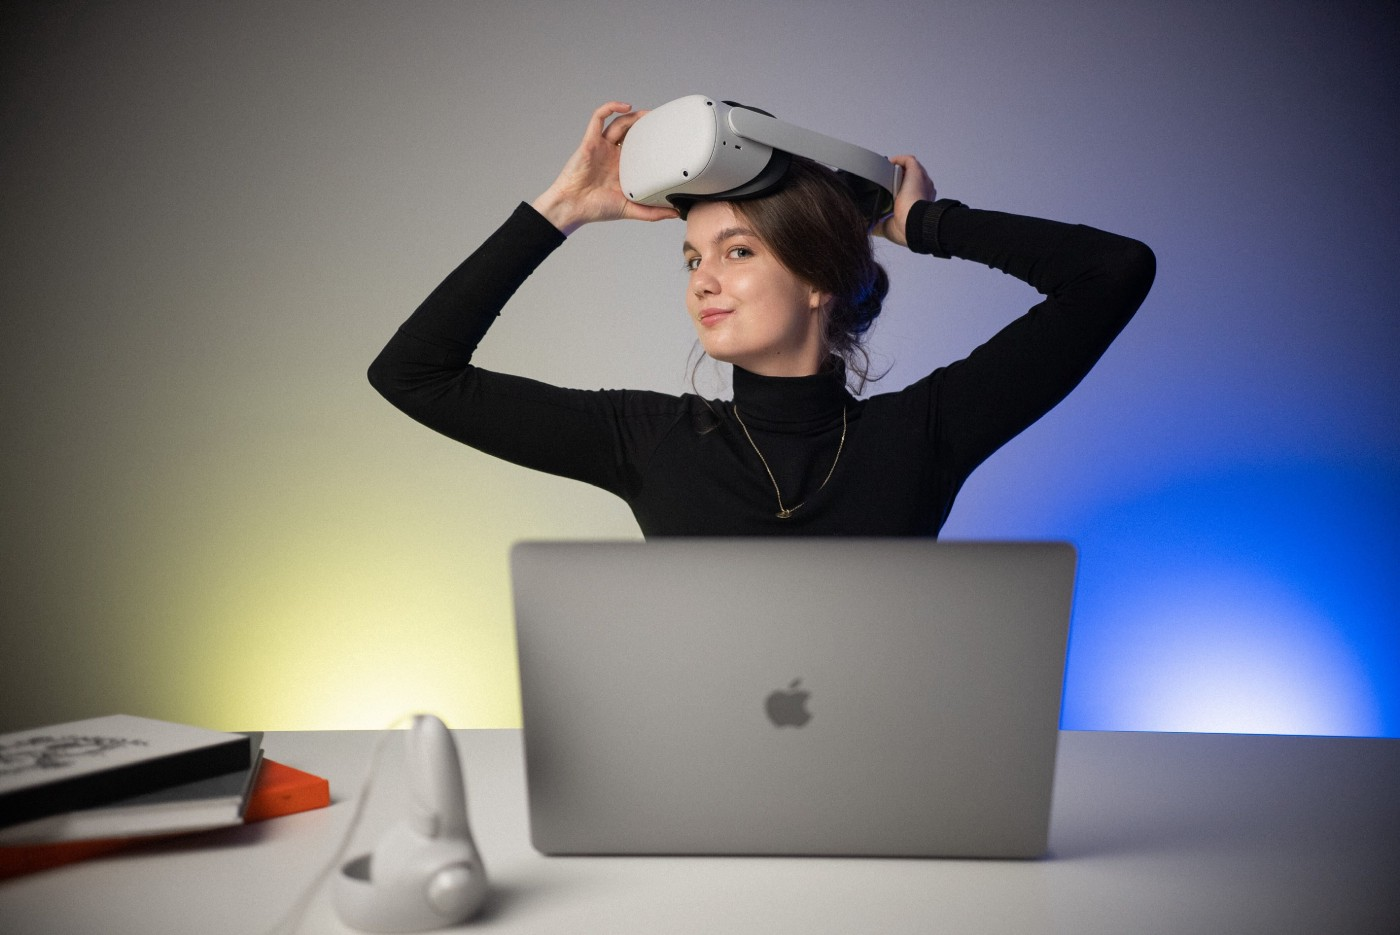 The author—young girl—behind her laptop wearing the Oculus VR headset, smiling.